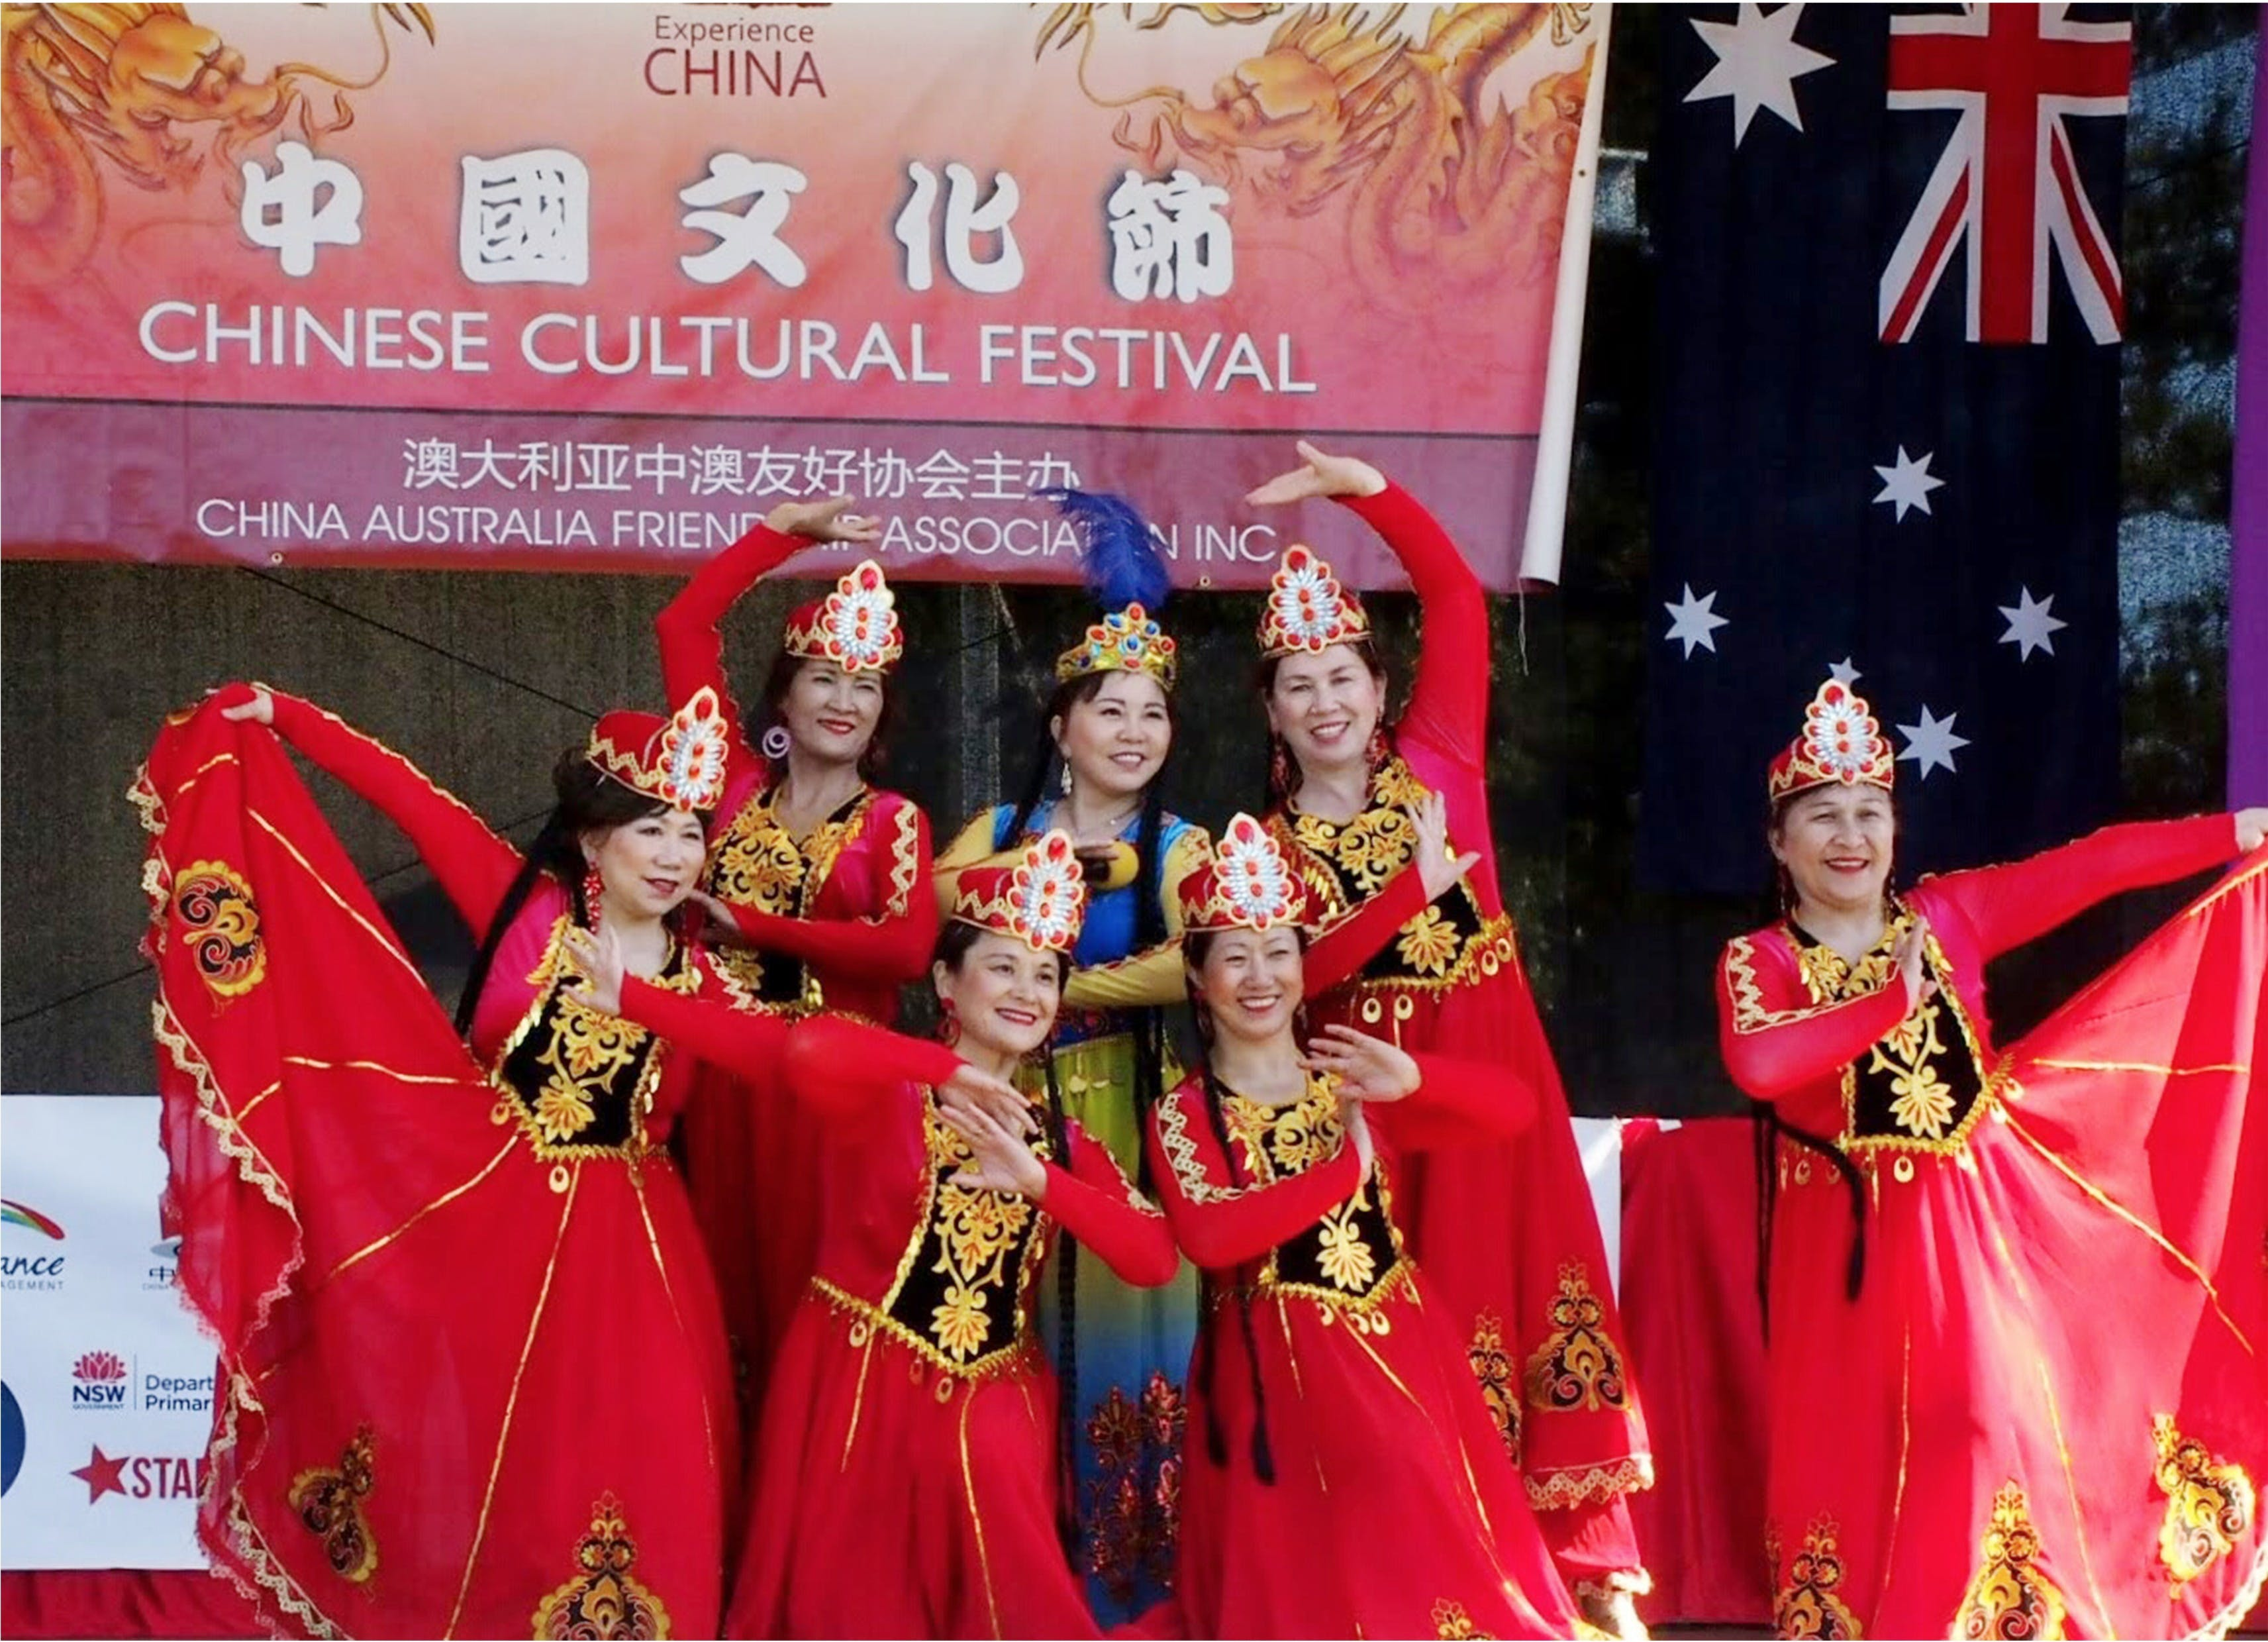 Central Coast Chinese Cultural Festival Moon Festival - Pubs and Clubs